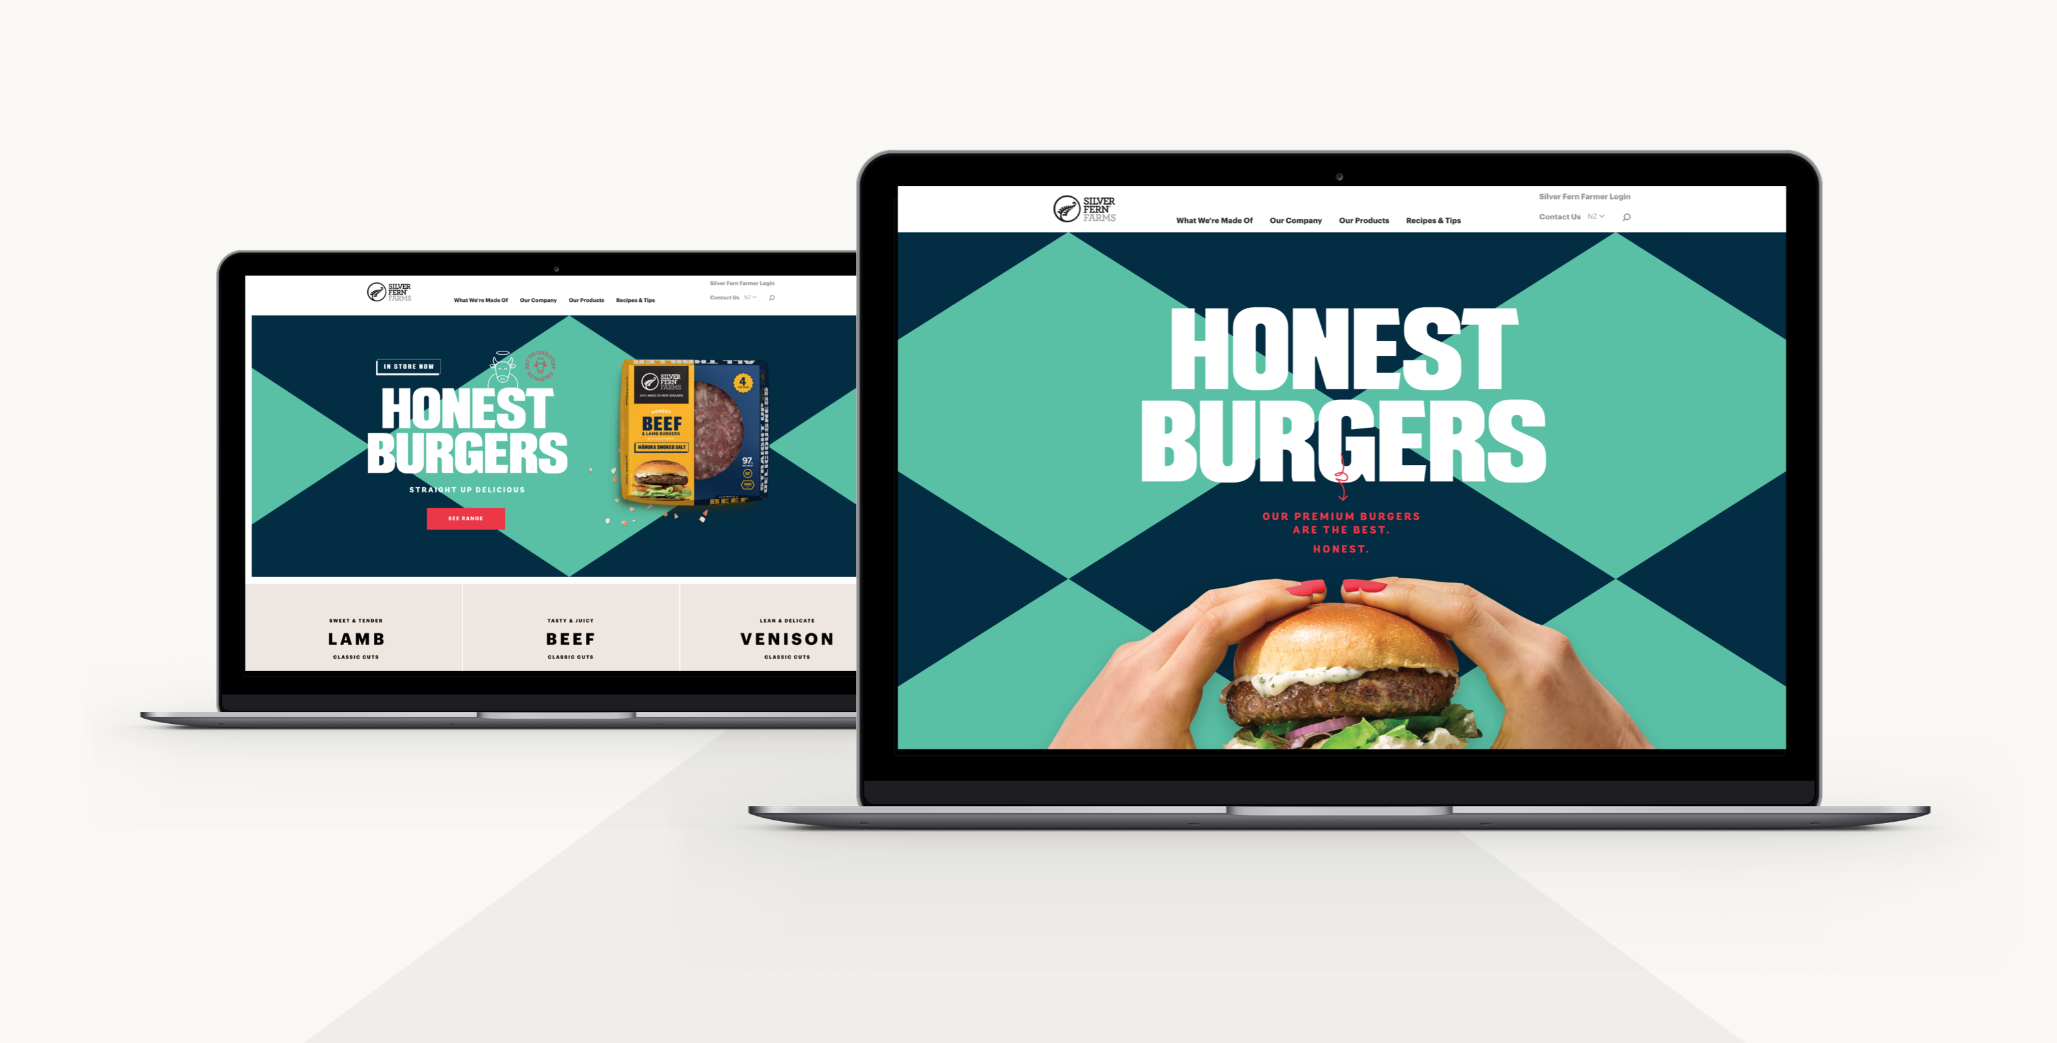 silver-fern-farms-honest-burgers-design-works-silverstripe-animation-homepage.png#asset:1299